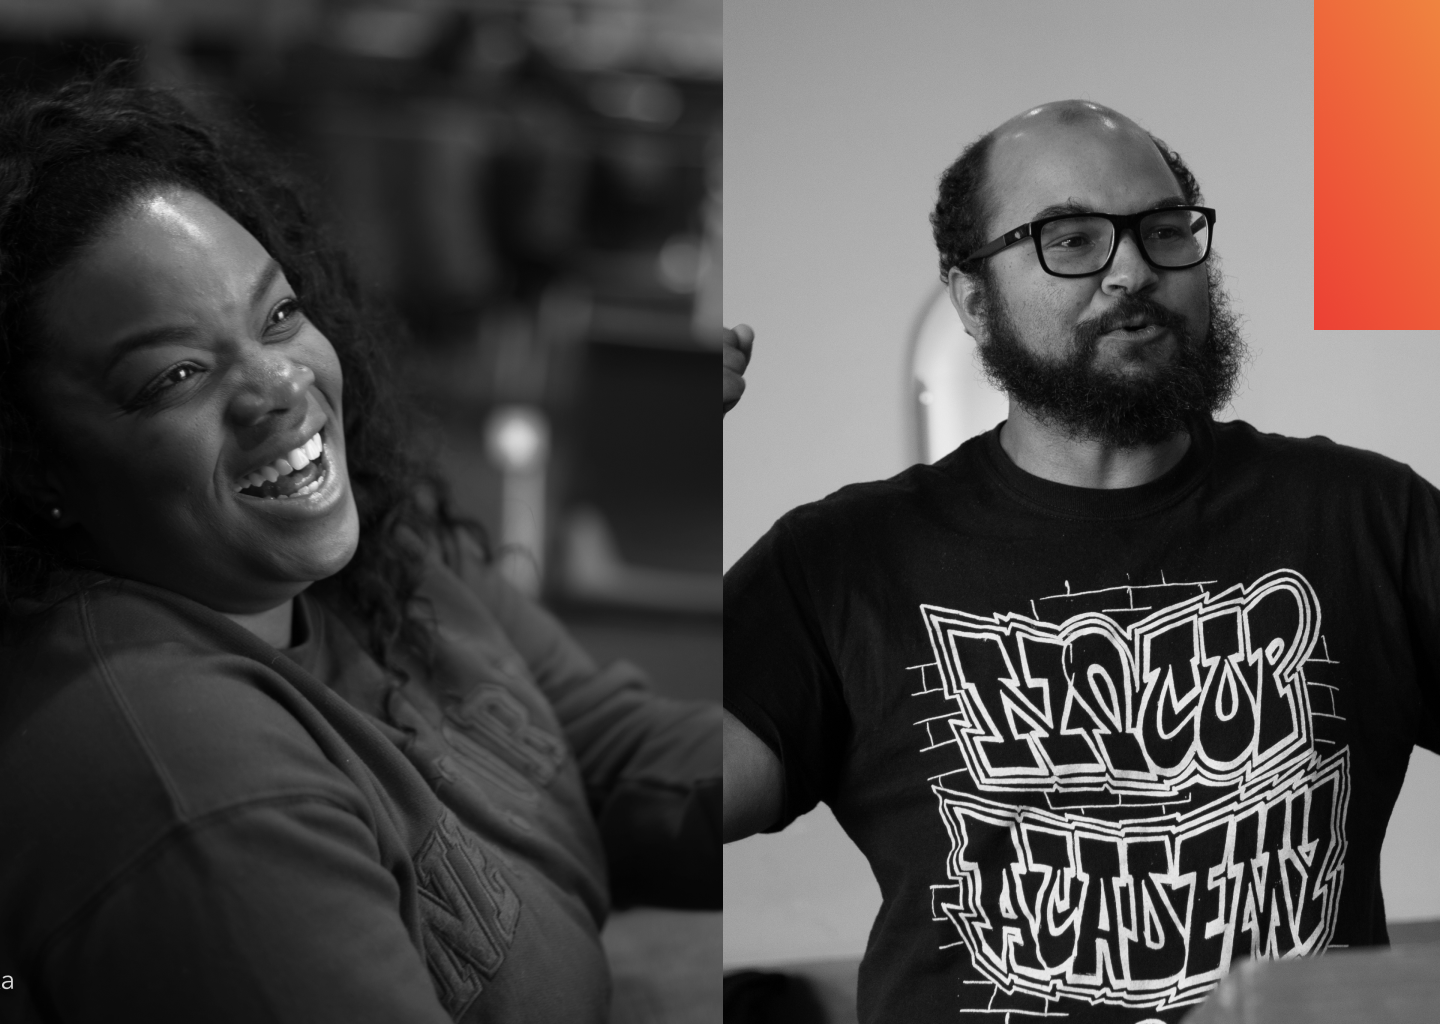 A woman laughing and a man speaking